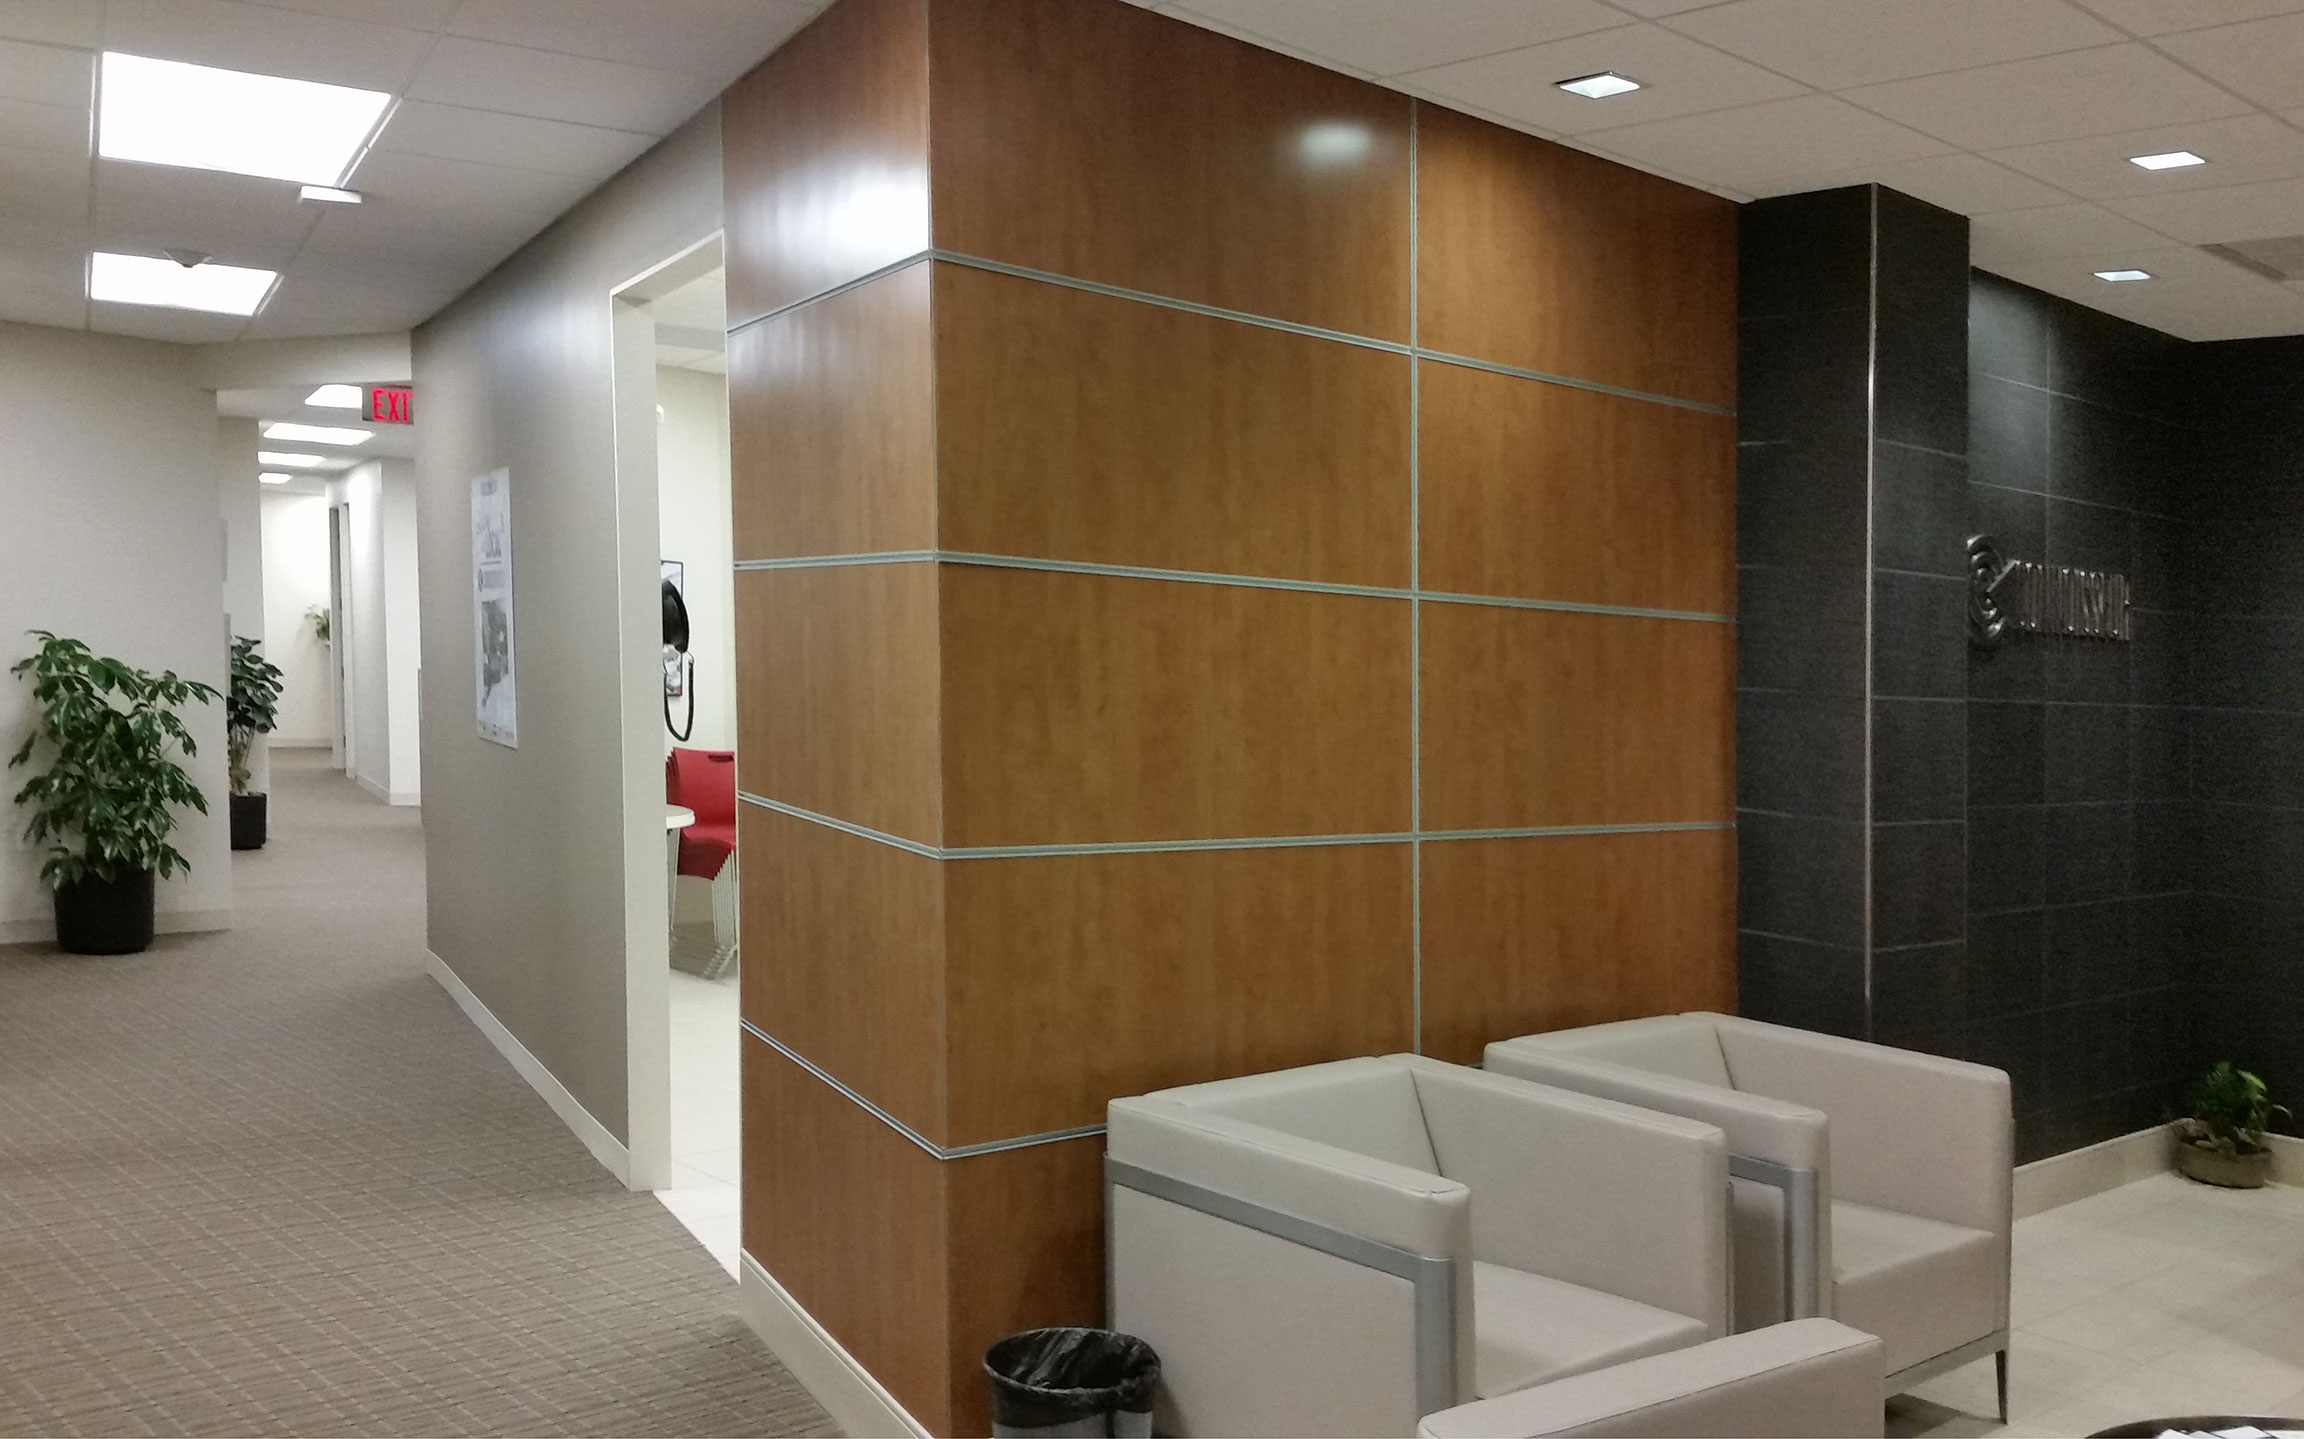 Wall Paneling Designs For Office : Gallery commercial fauxwoodveneer